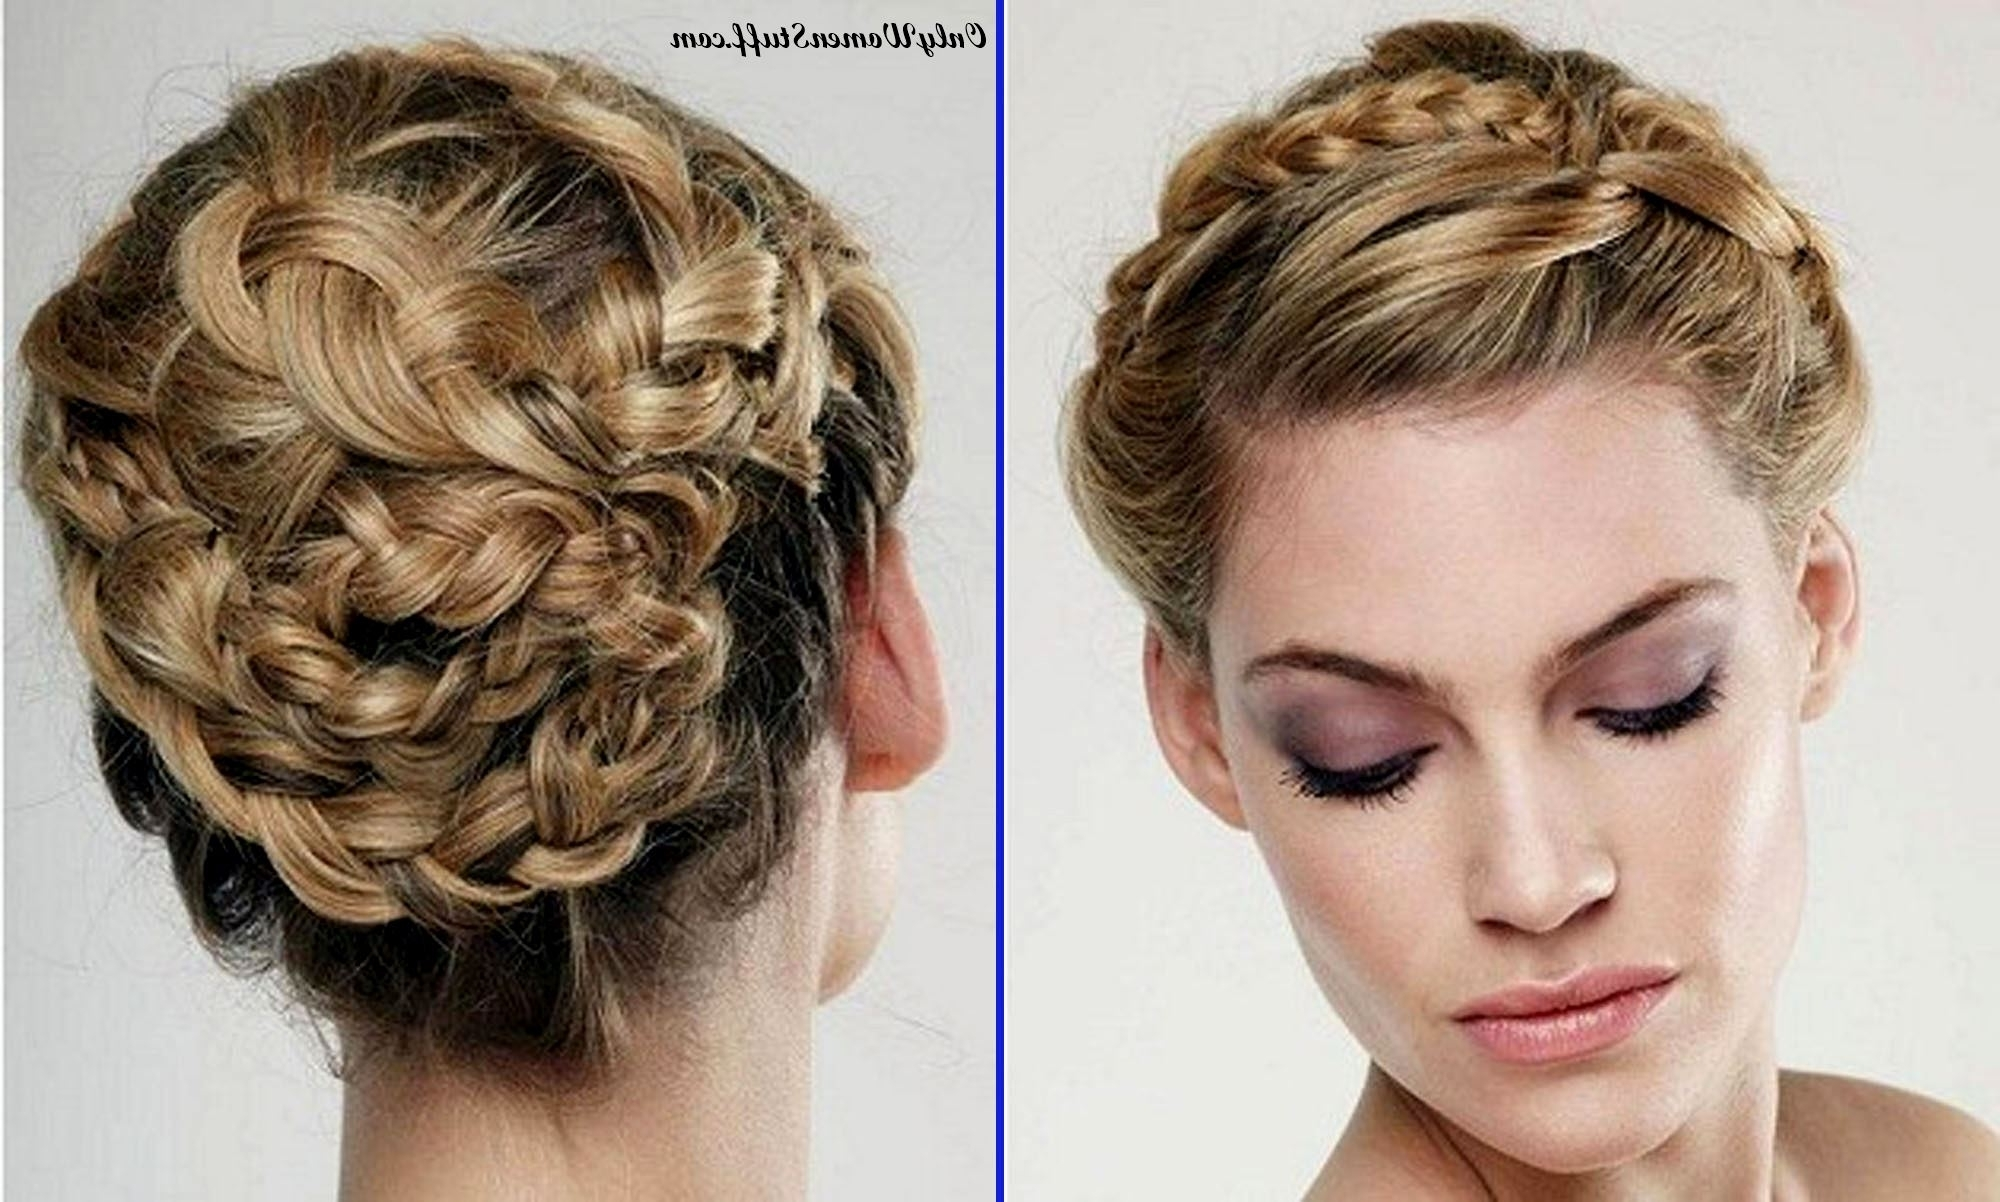 50+ Easy Prom Hairstyles & Updos Ideas (Stepstep) Throughout Homecoming Updo Hairstyles (View 3 of 15)